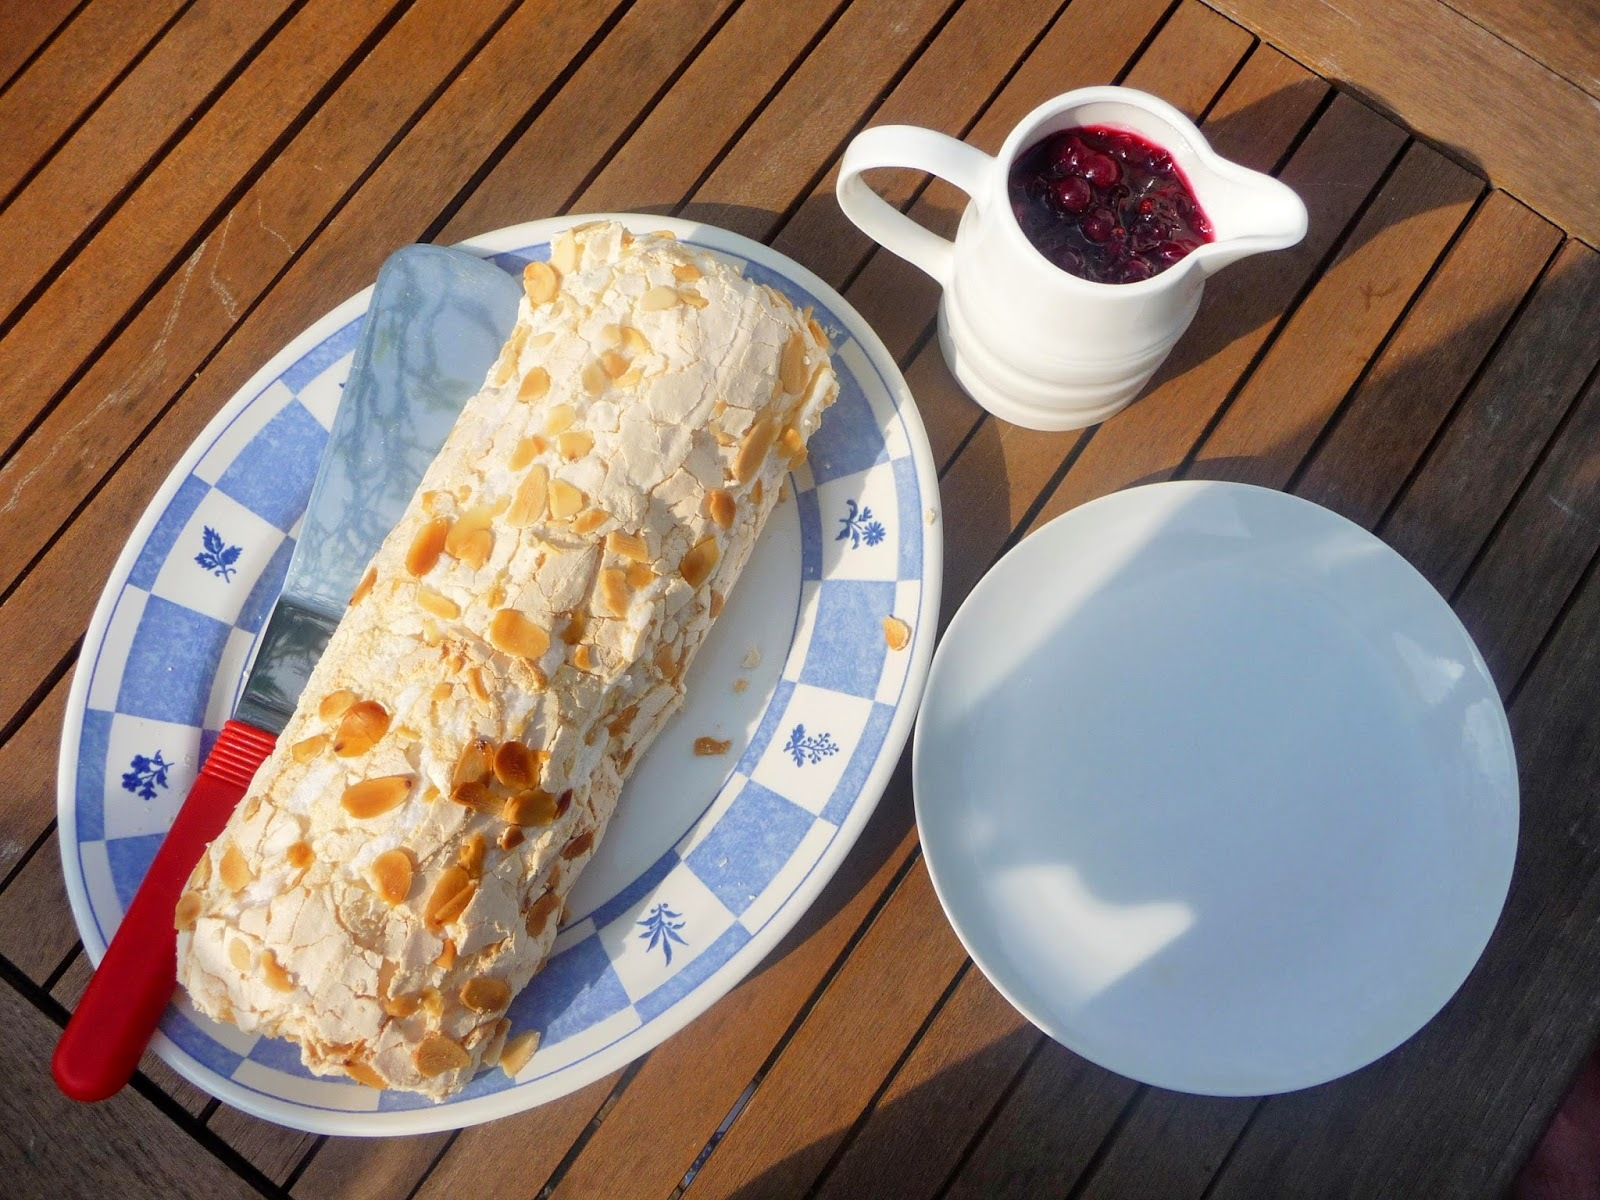 Lekue - meringue roulade with blackcurrant and mint couli